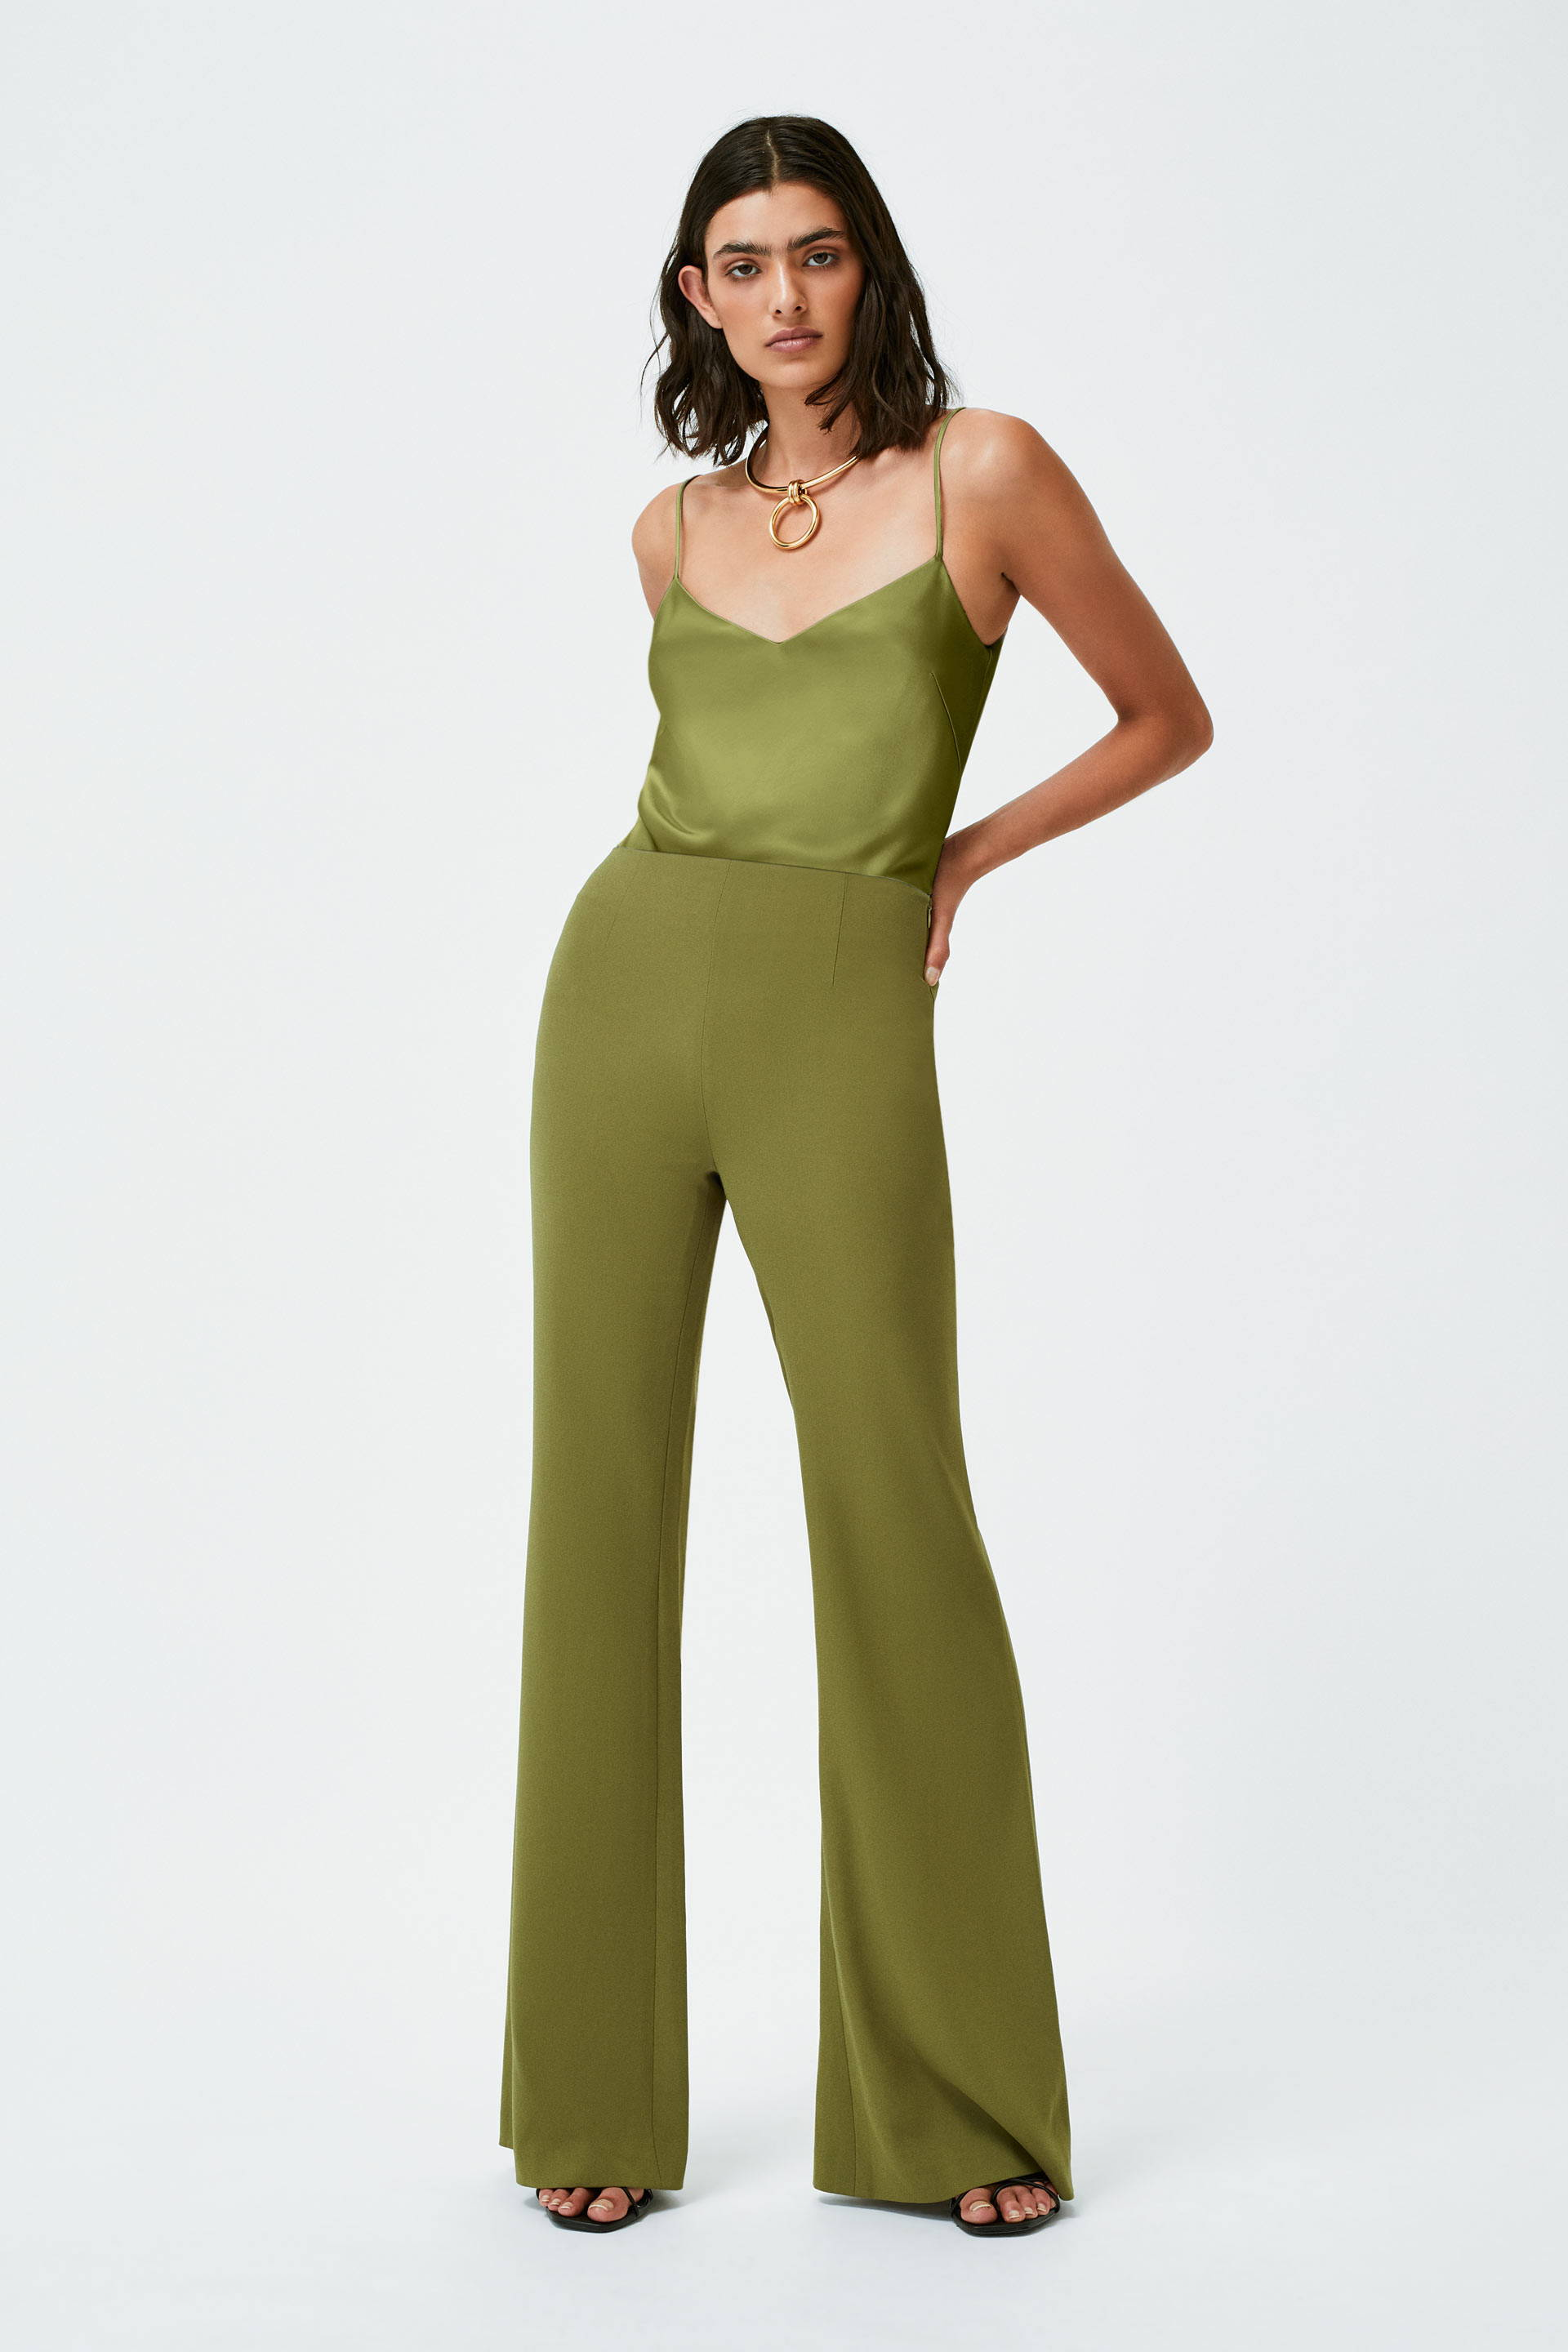 Galvan London Matte Satin Back Crepe Kakhi Green Trousers